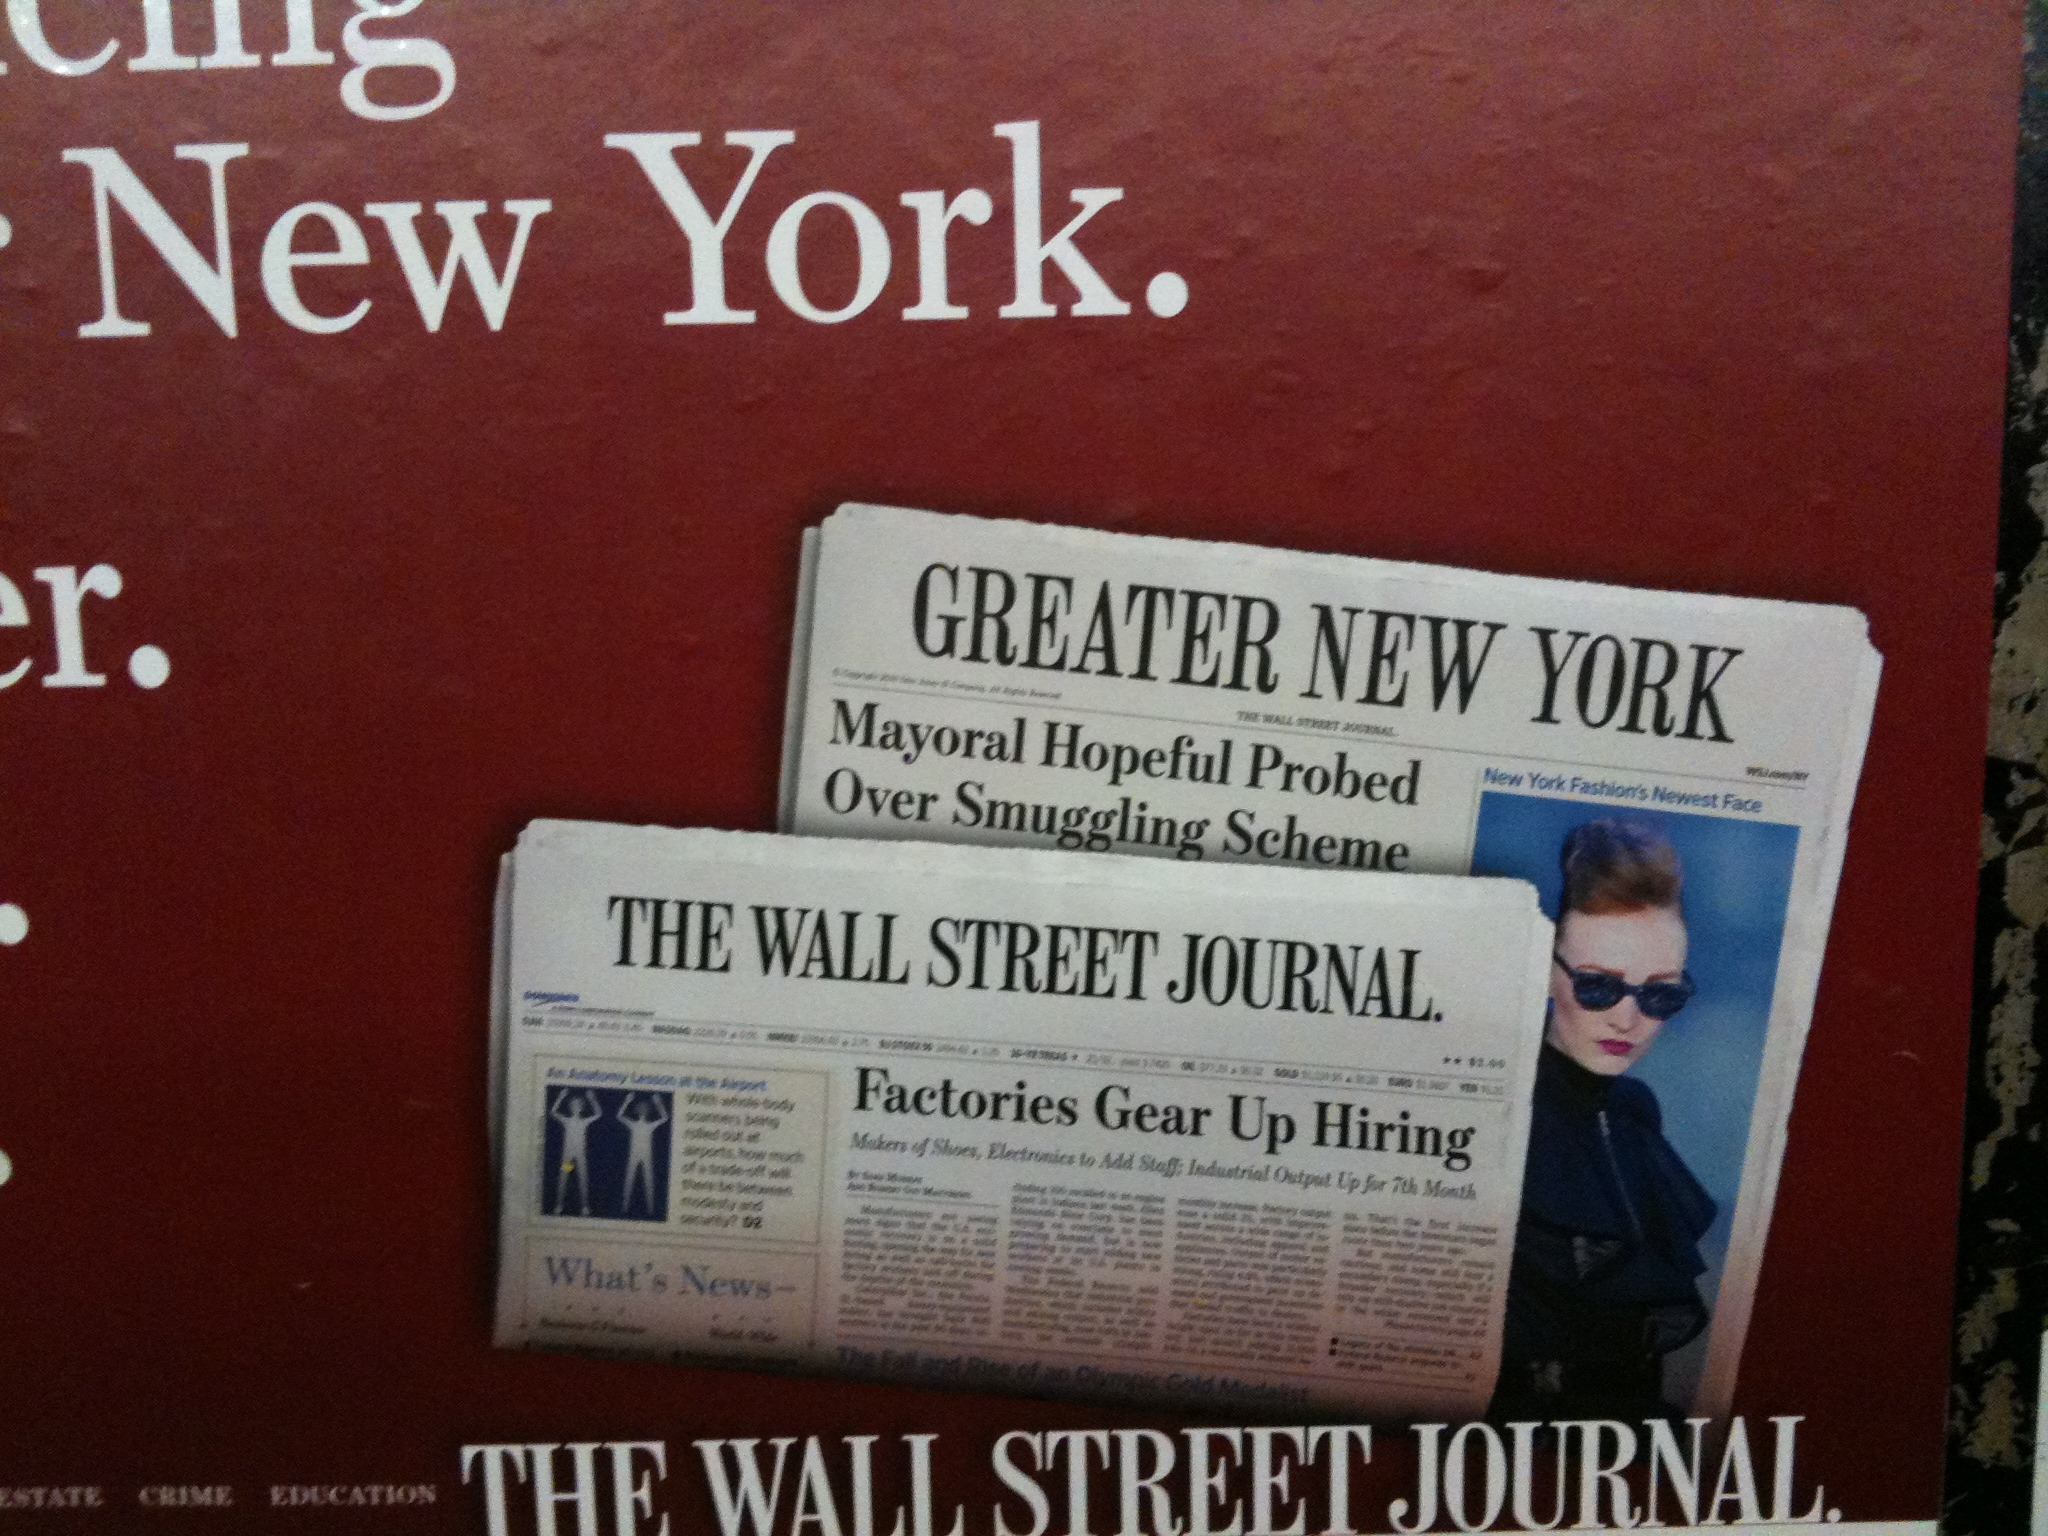 I thought I had missed a major New York news story about a mayoral candidate when I saw this sign in the subway for The Wall Street Journal's new metro section. (This marketing campaign has been out there for a while, but I didn't focus on the headlines.)